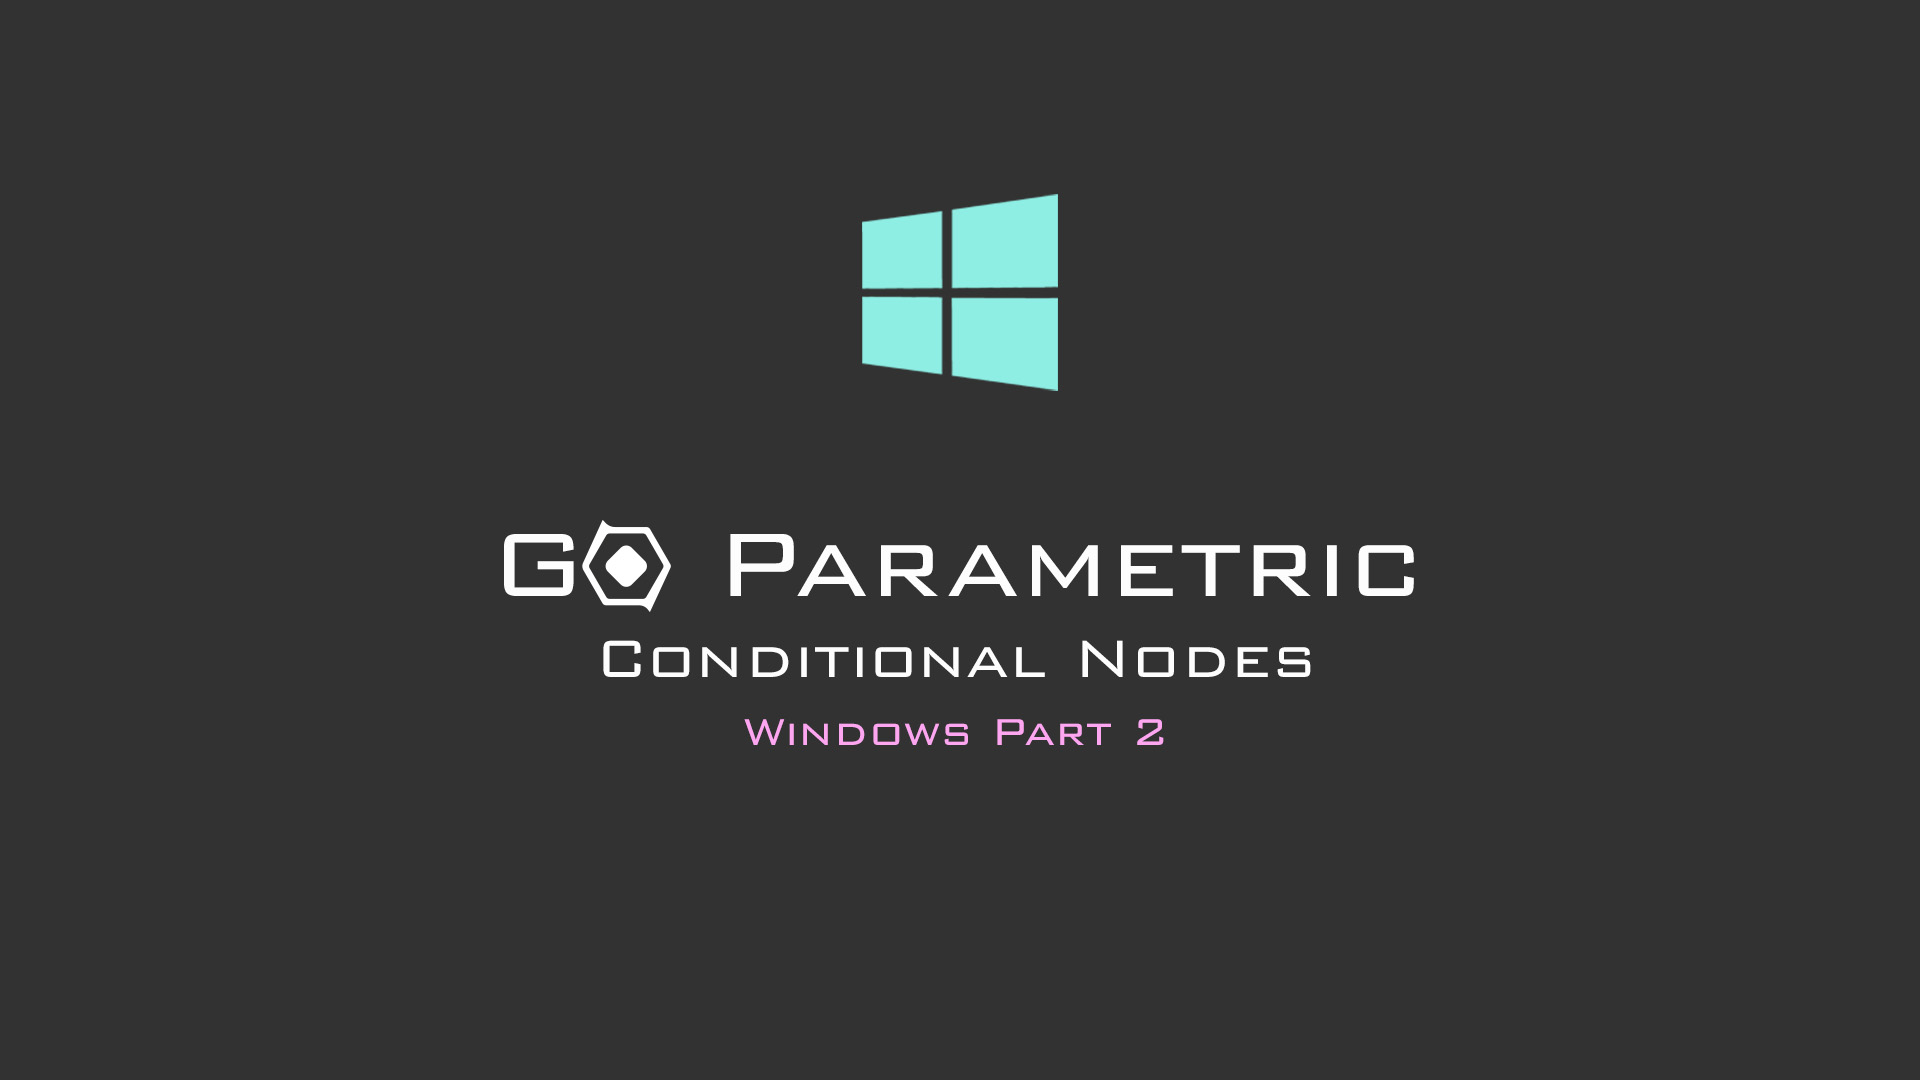 Go Parametric_Conditional_Nodes_Pt2.jpg